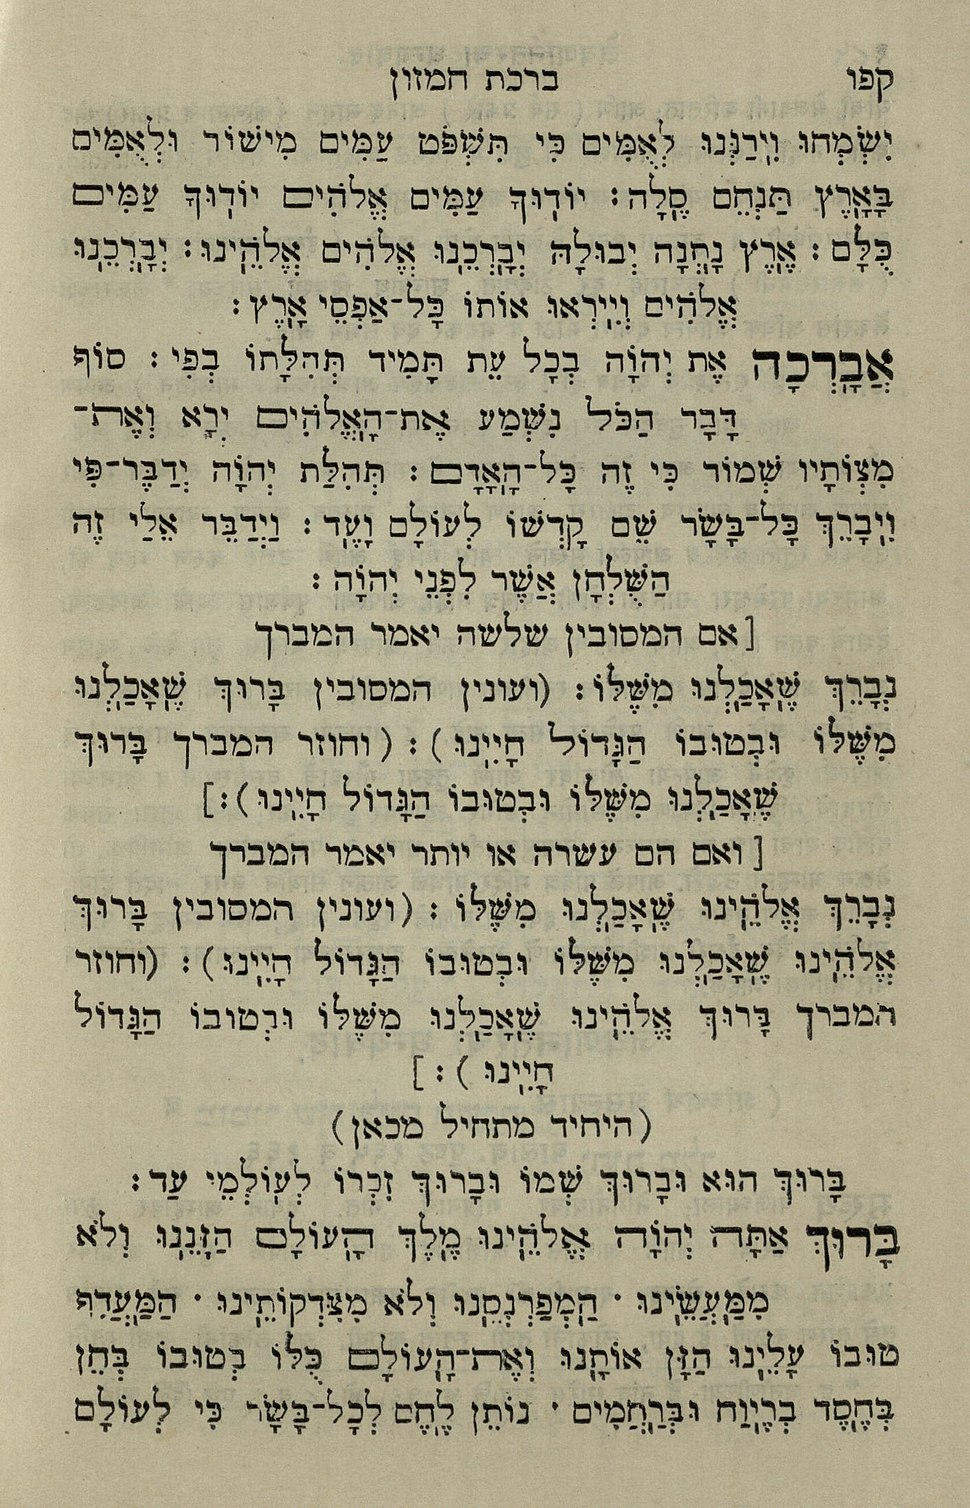 The National Library of Israel - The Daily Prayers translated from Hebrew to Marathi 1388862 2340601-10-0374 WEB